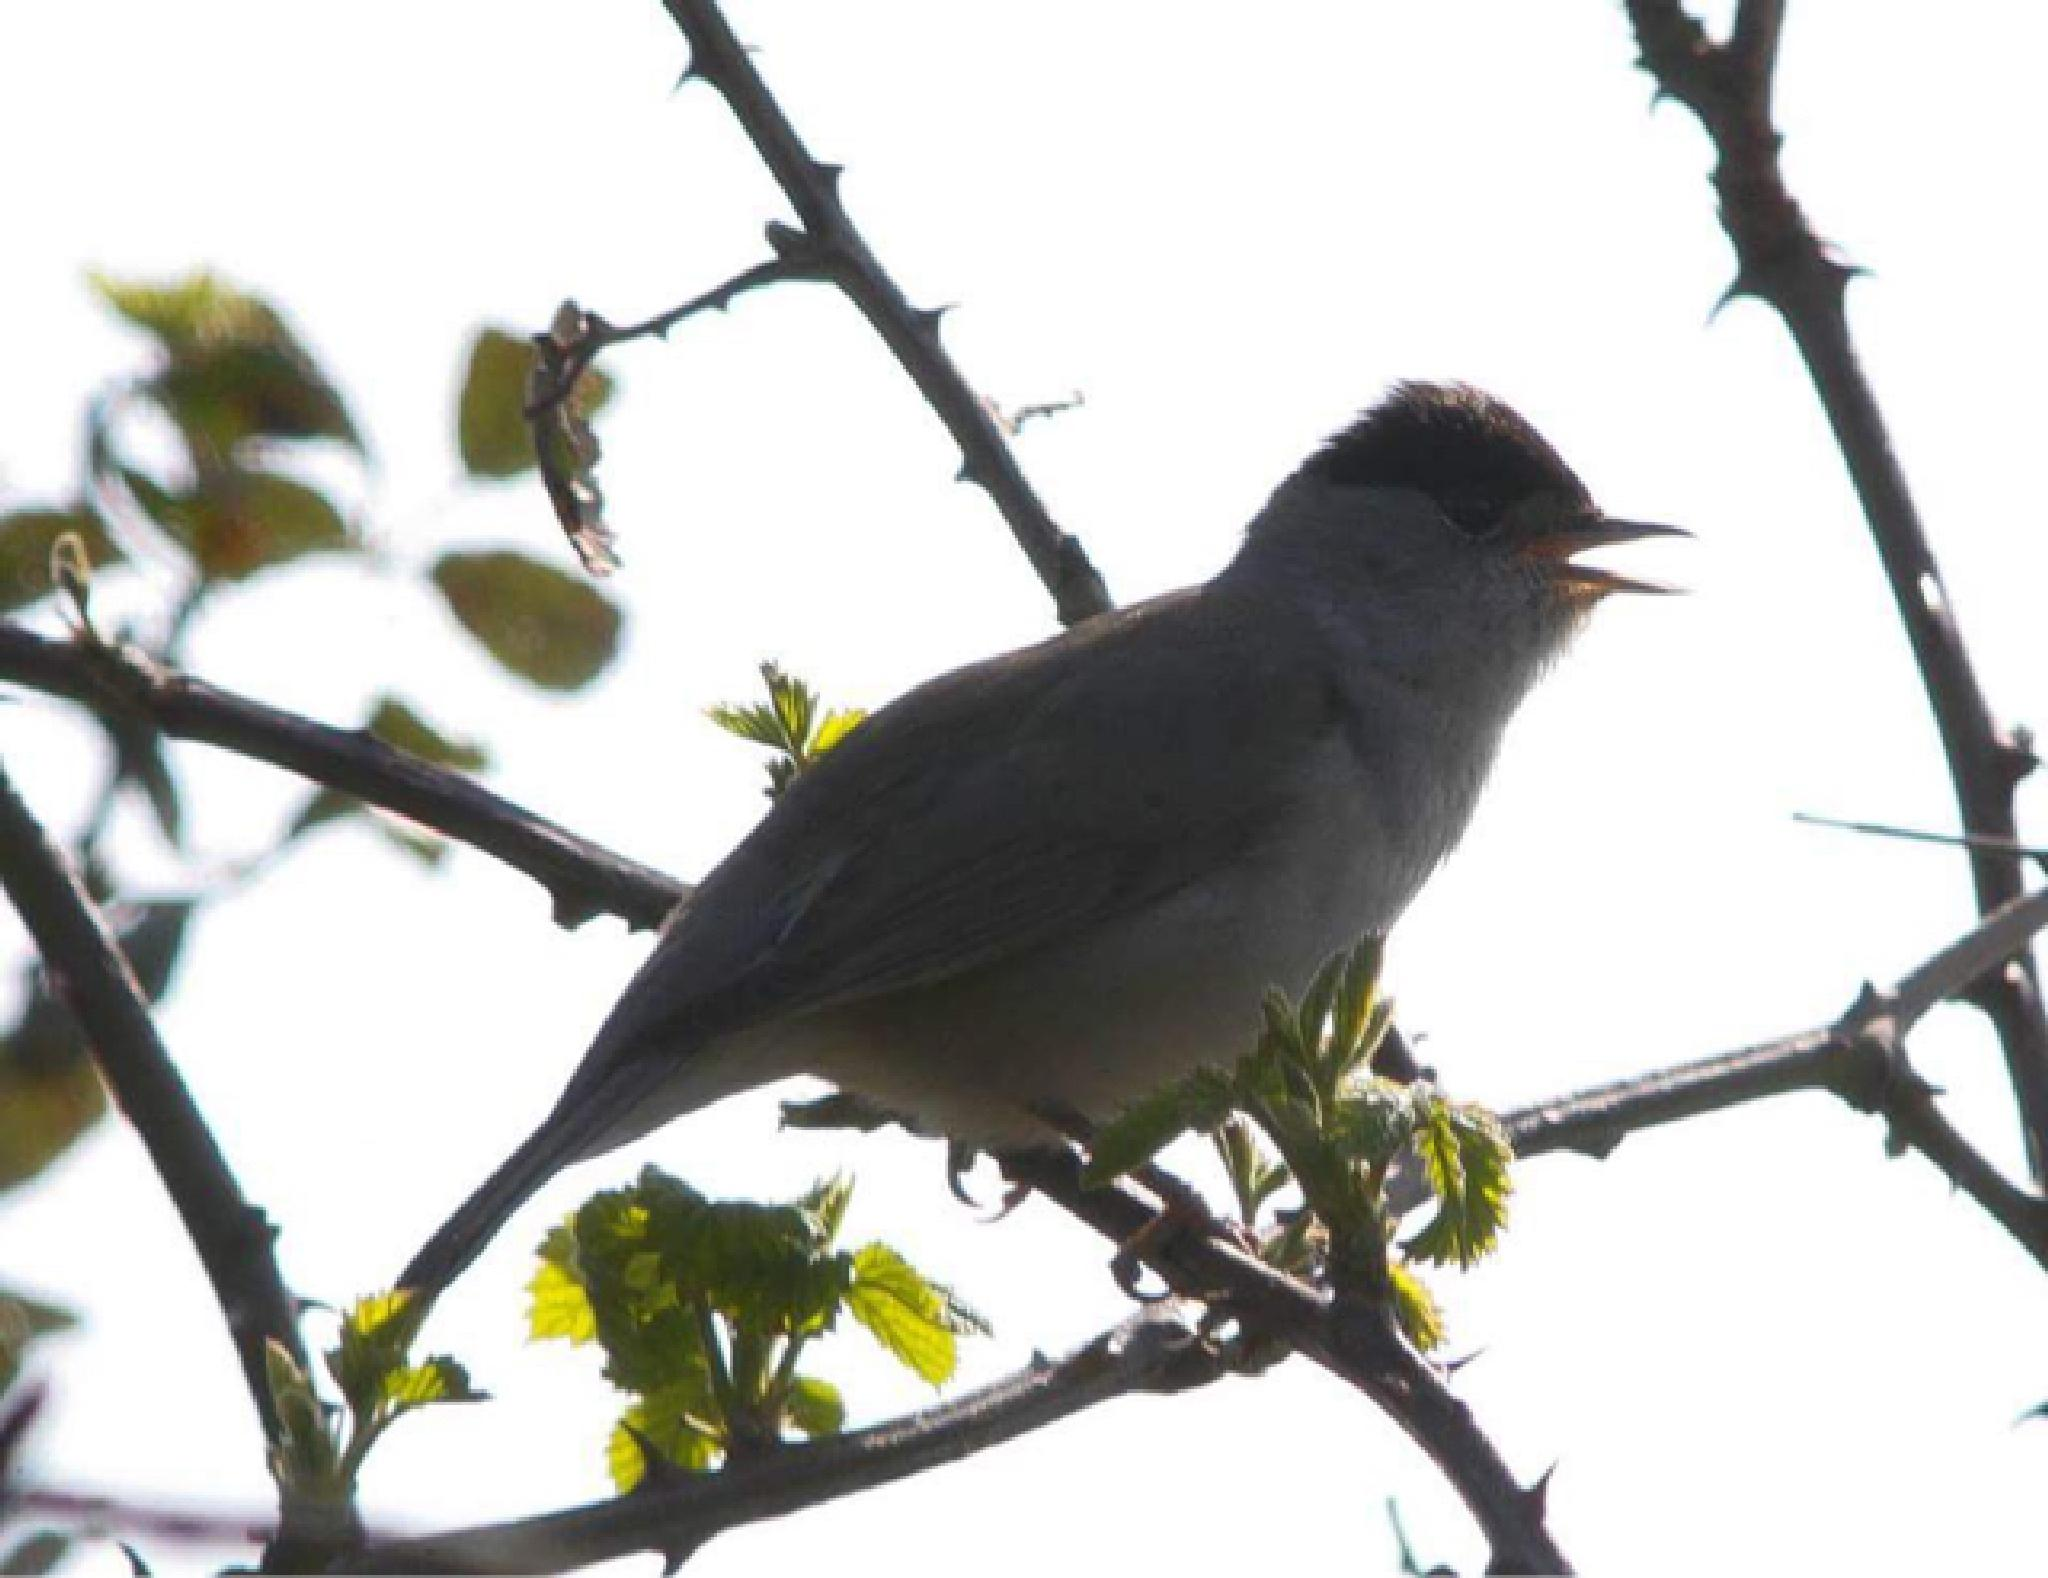 Singing male Blackcap by david.griffith.522